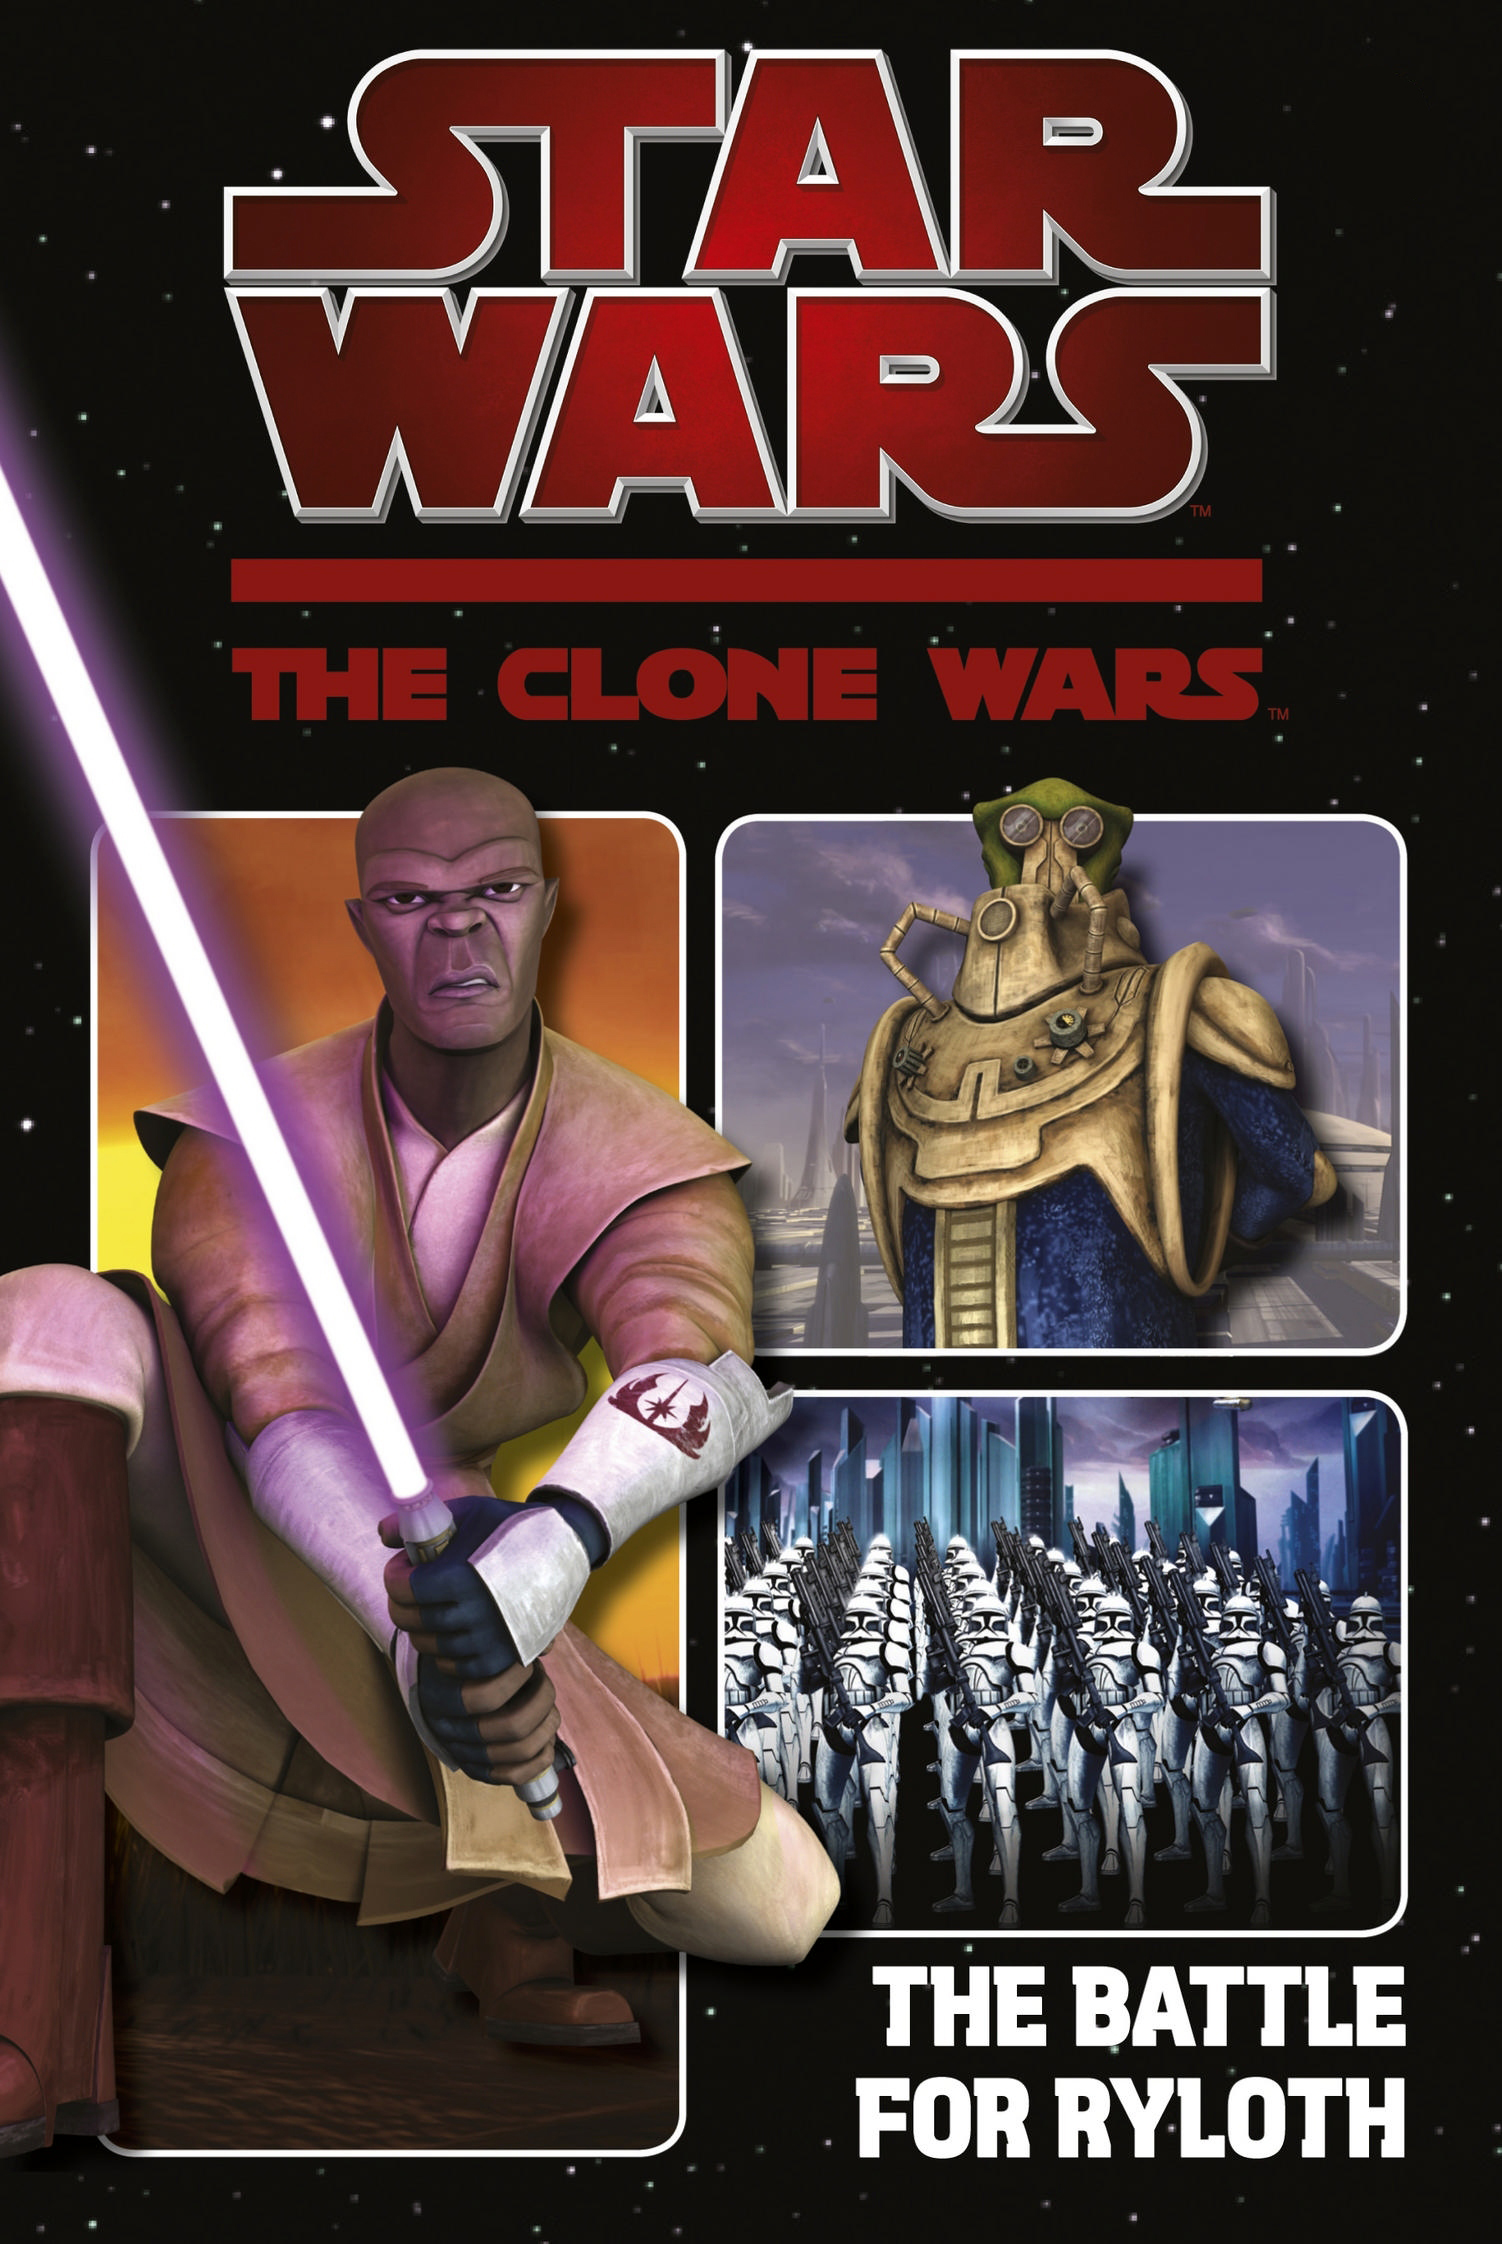 The Clone Wars series adaptation